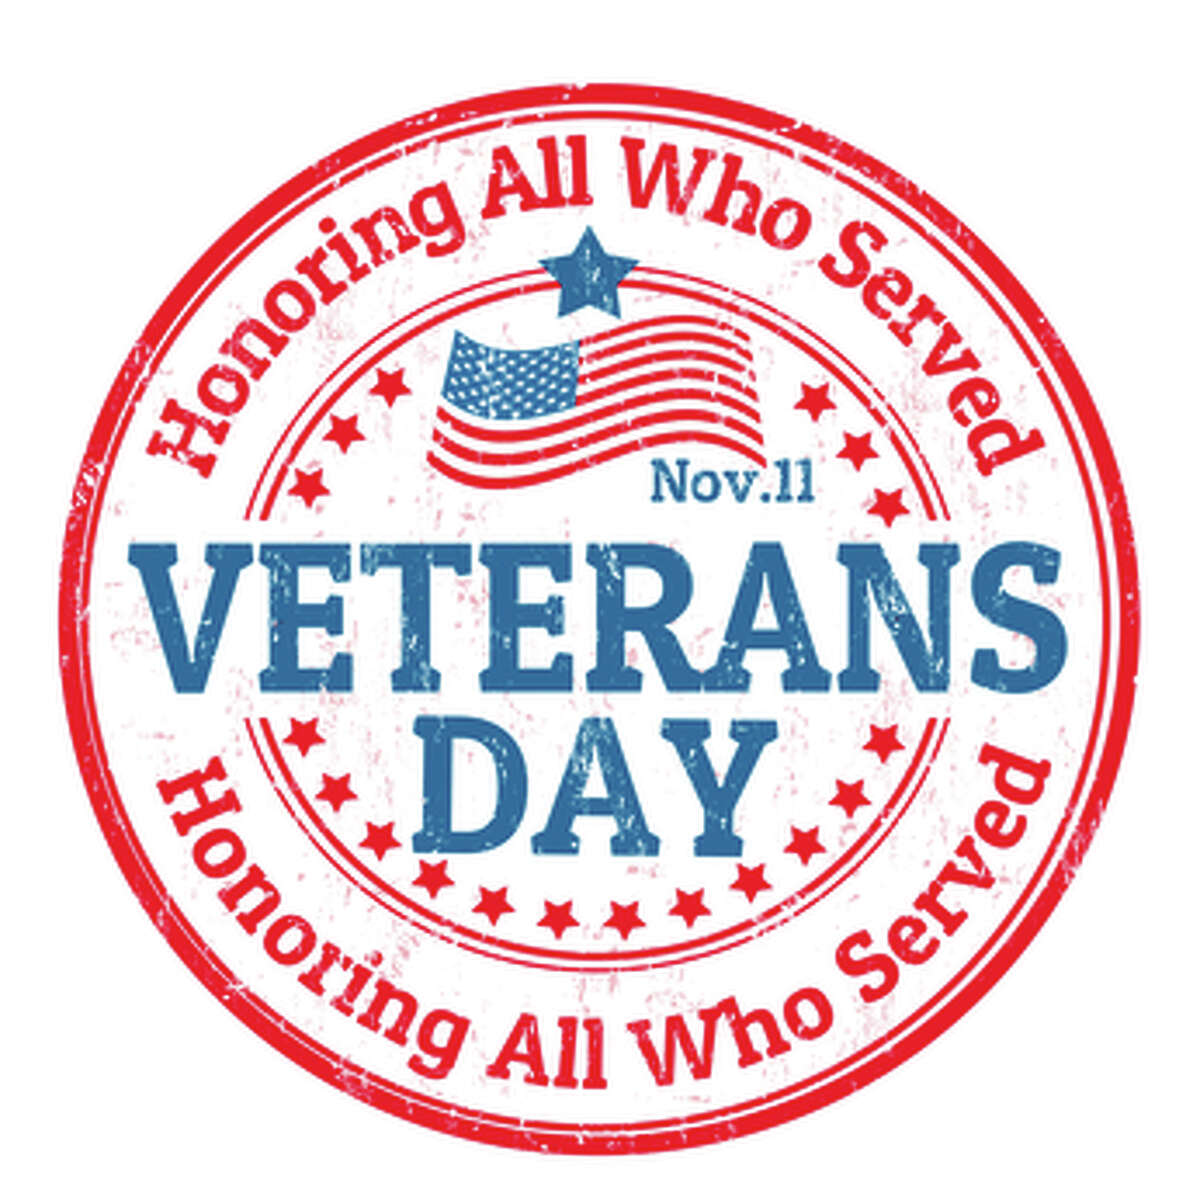 Several local entities in the Humble and Lake Houston areas are hosting Veterans Day events in 2016 including Beckwith's Car Care, Humble High School, the May Community Center and Lone Star College-Kingwood.